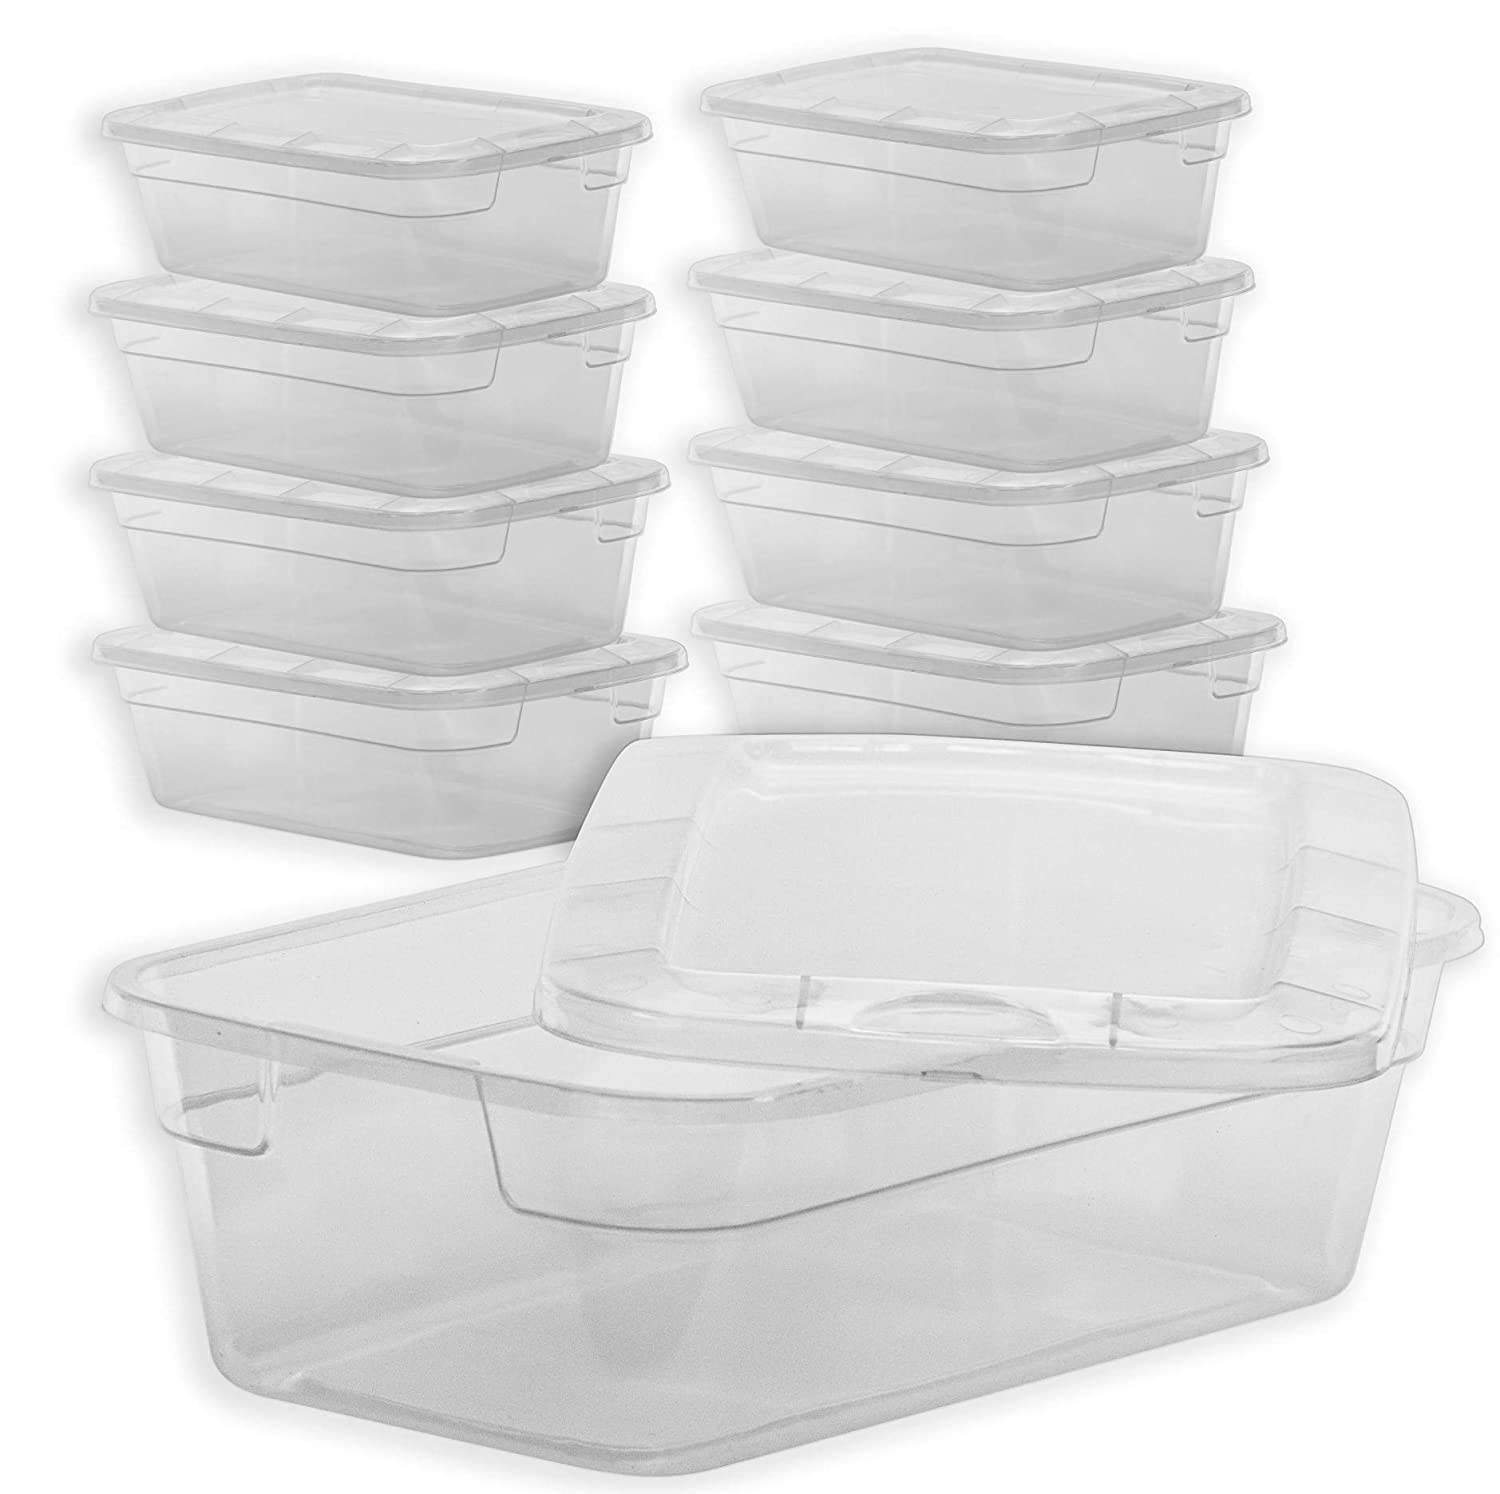 DecorRack 4 Clear Plastic Storage Containers with Lids, 6 Quart Bin, Small Compact Stackable Storage Box, Perfect Underbed Toy Storage or Cat Dog Food Container, BPA- Free Plastic Clear Lid (4 Pack)